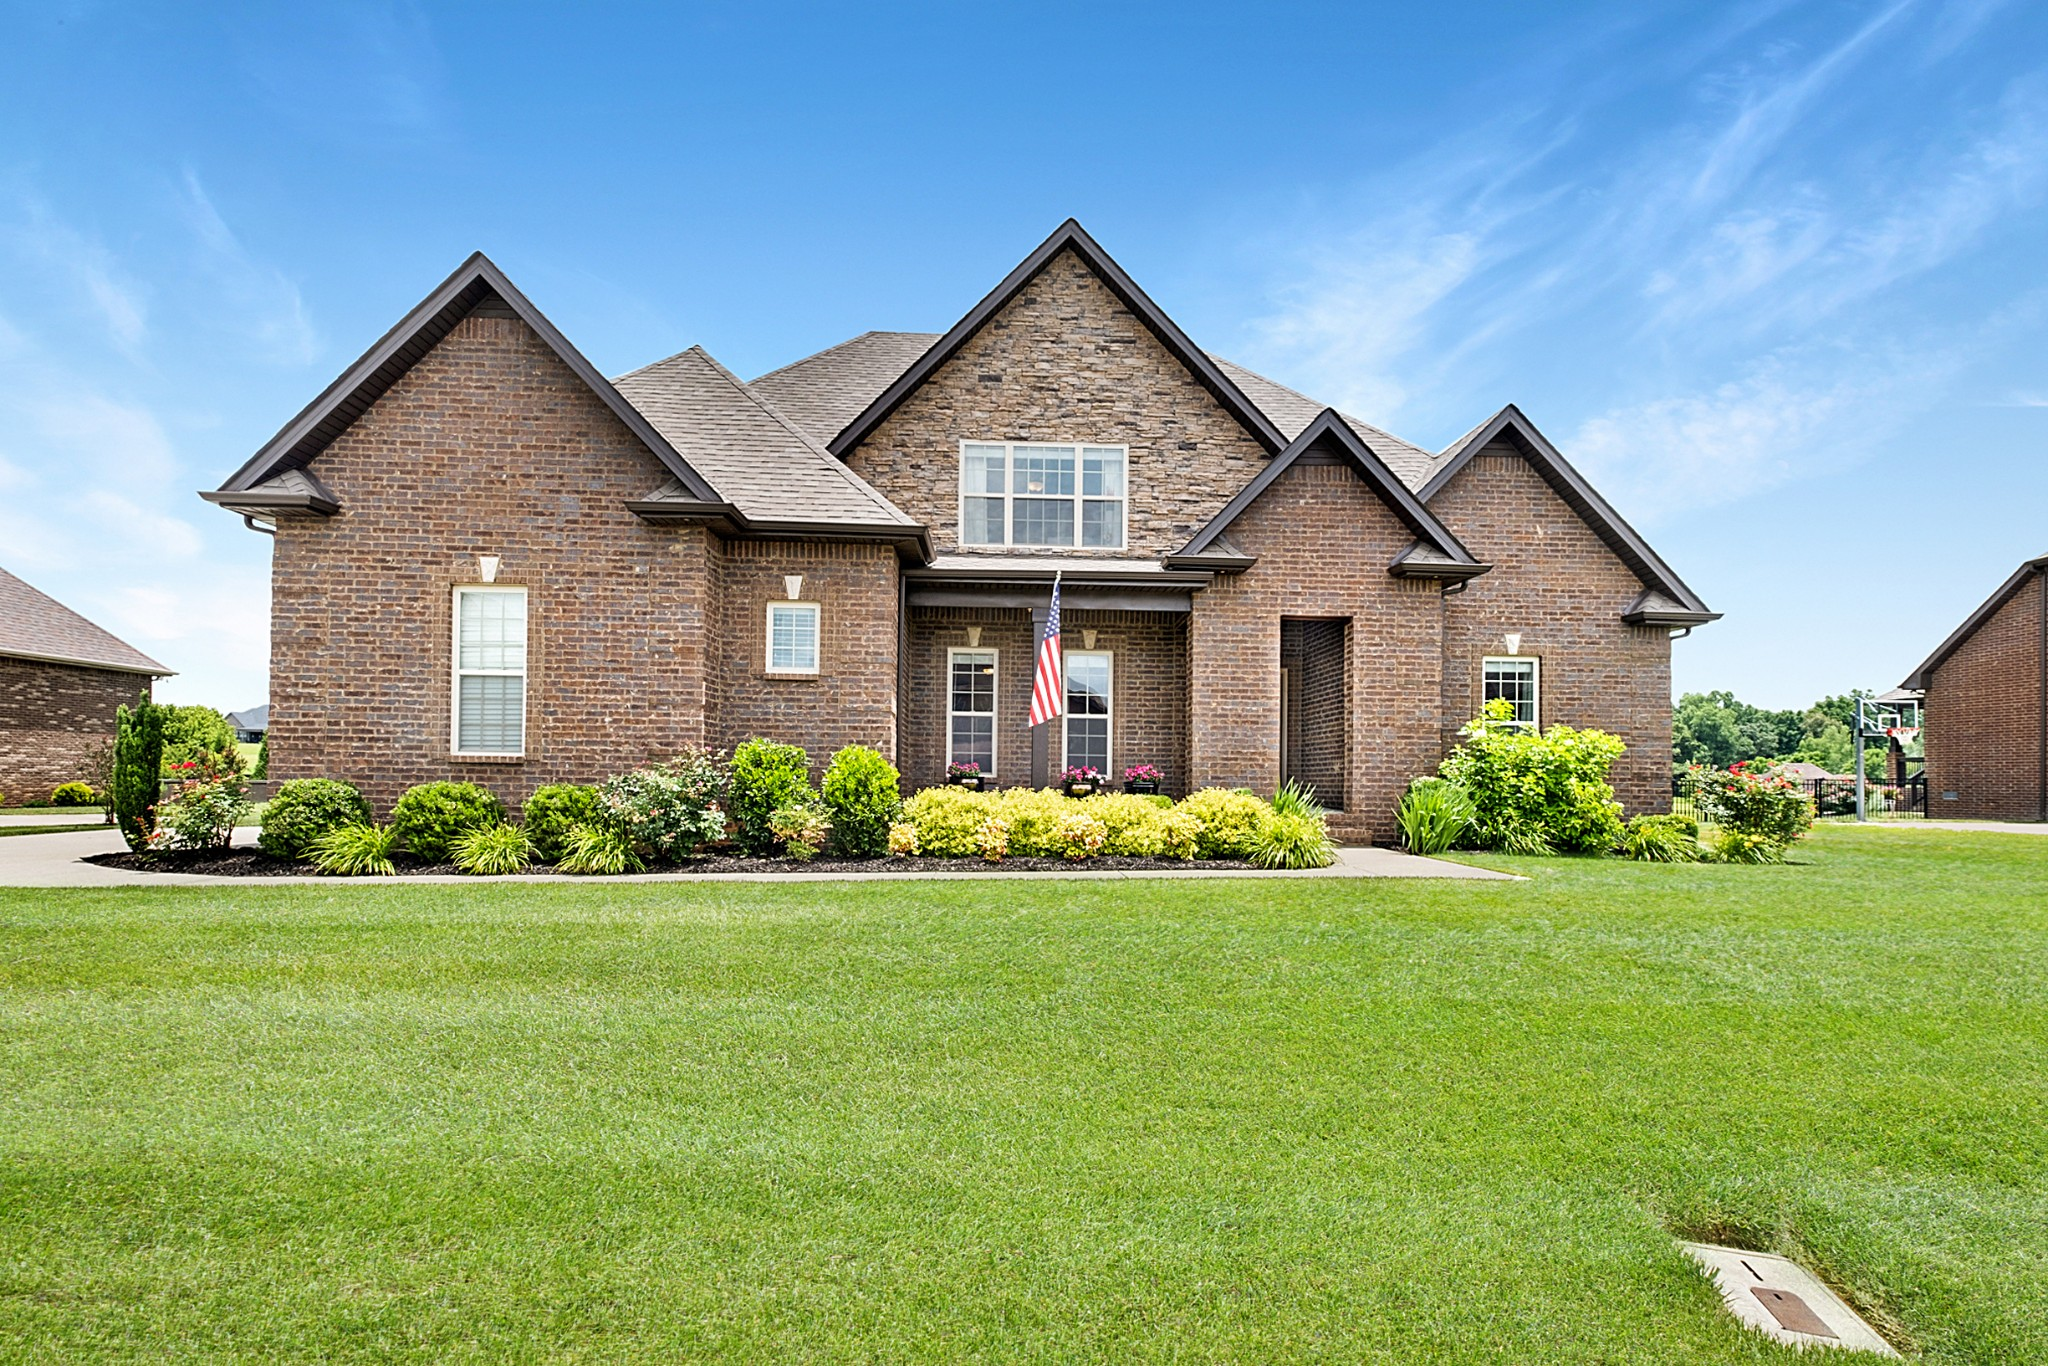 3153 Carrie Taylor Cir Property Photo - Clarksville, TN real estate listing